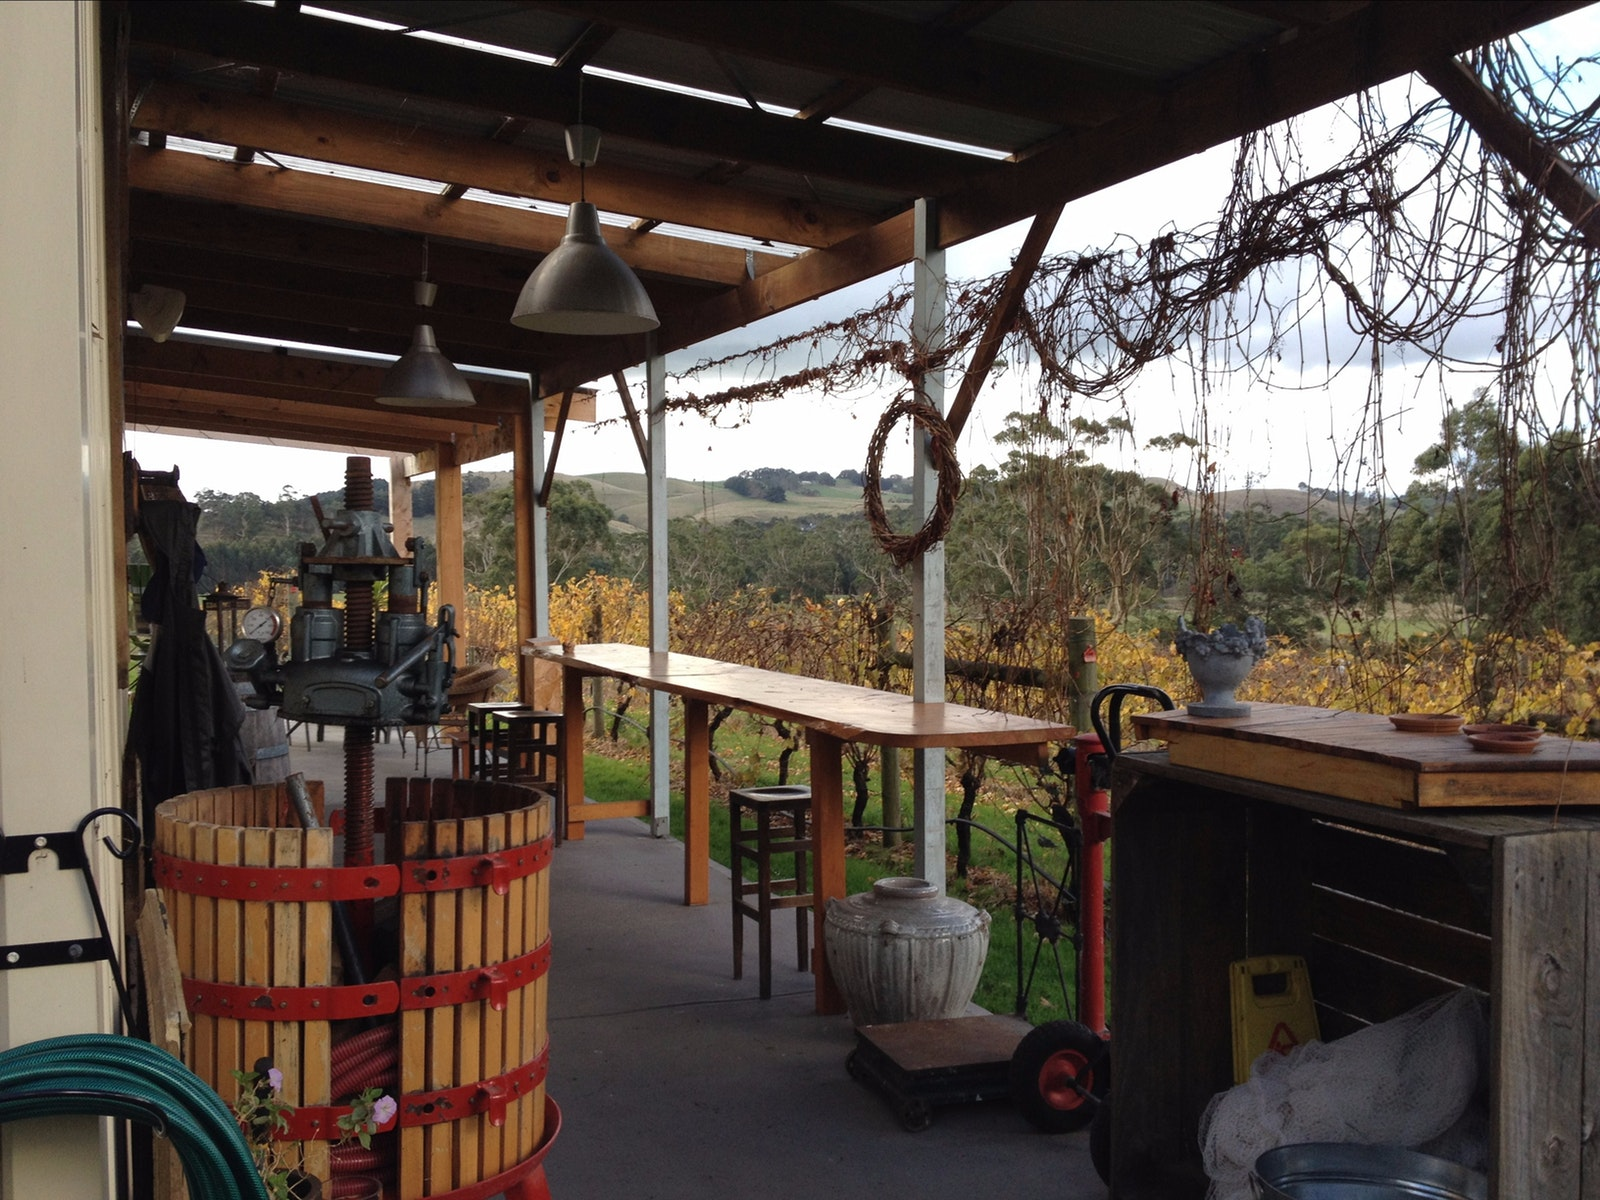 Gippsland Wine Company patio overlooking vineyard.